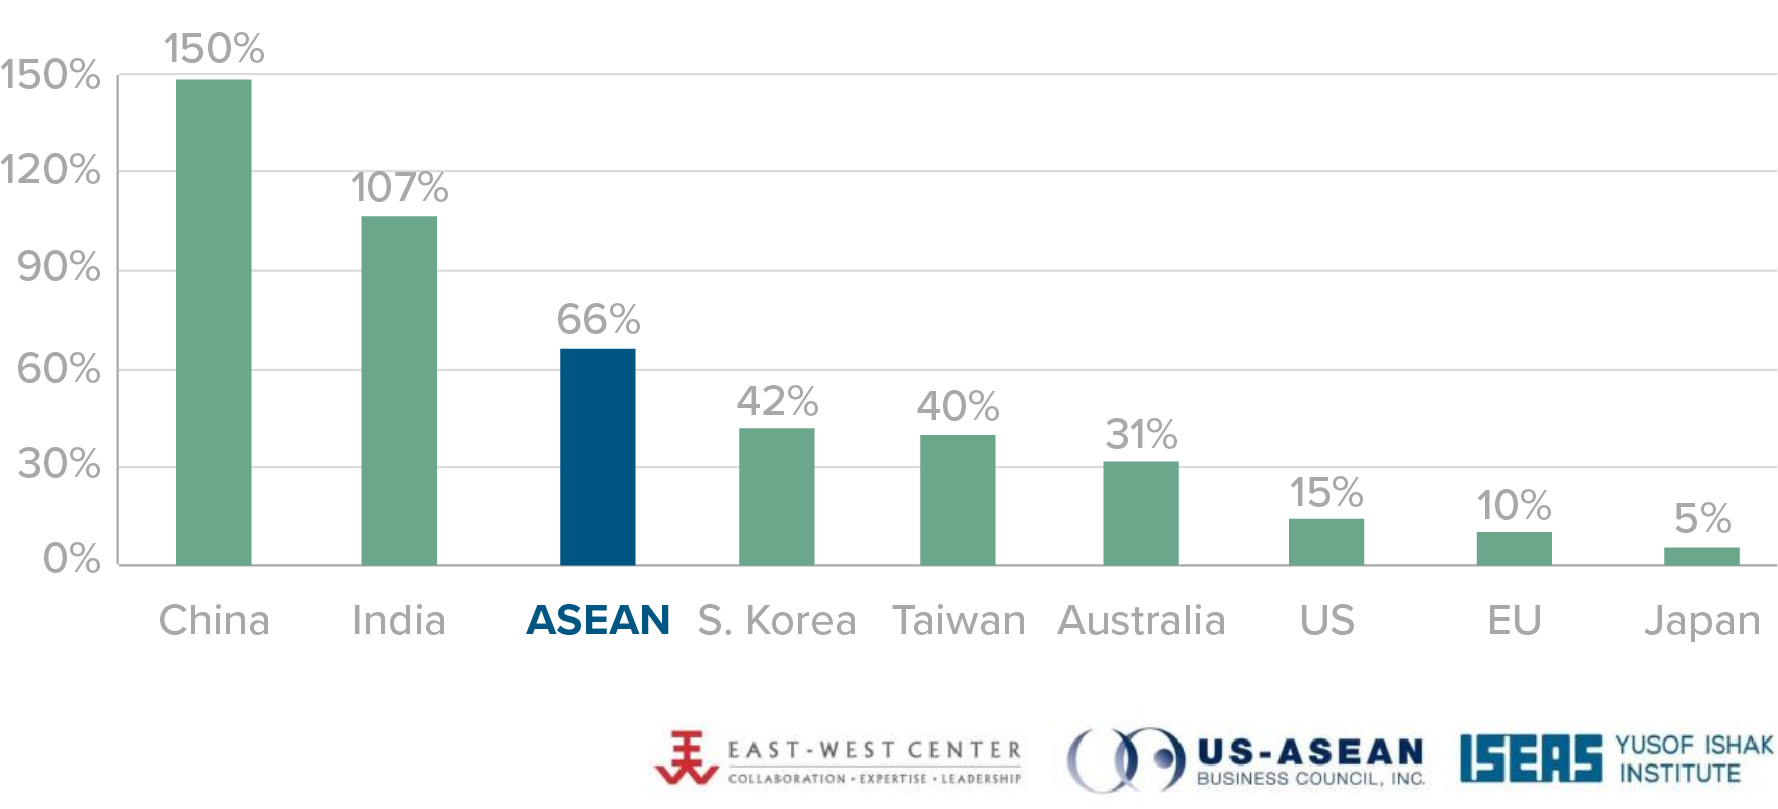 ASEAN's economic growth has outpaced that of many other regional and global economies. Source: http://www.asiamattersforamerica.org/